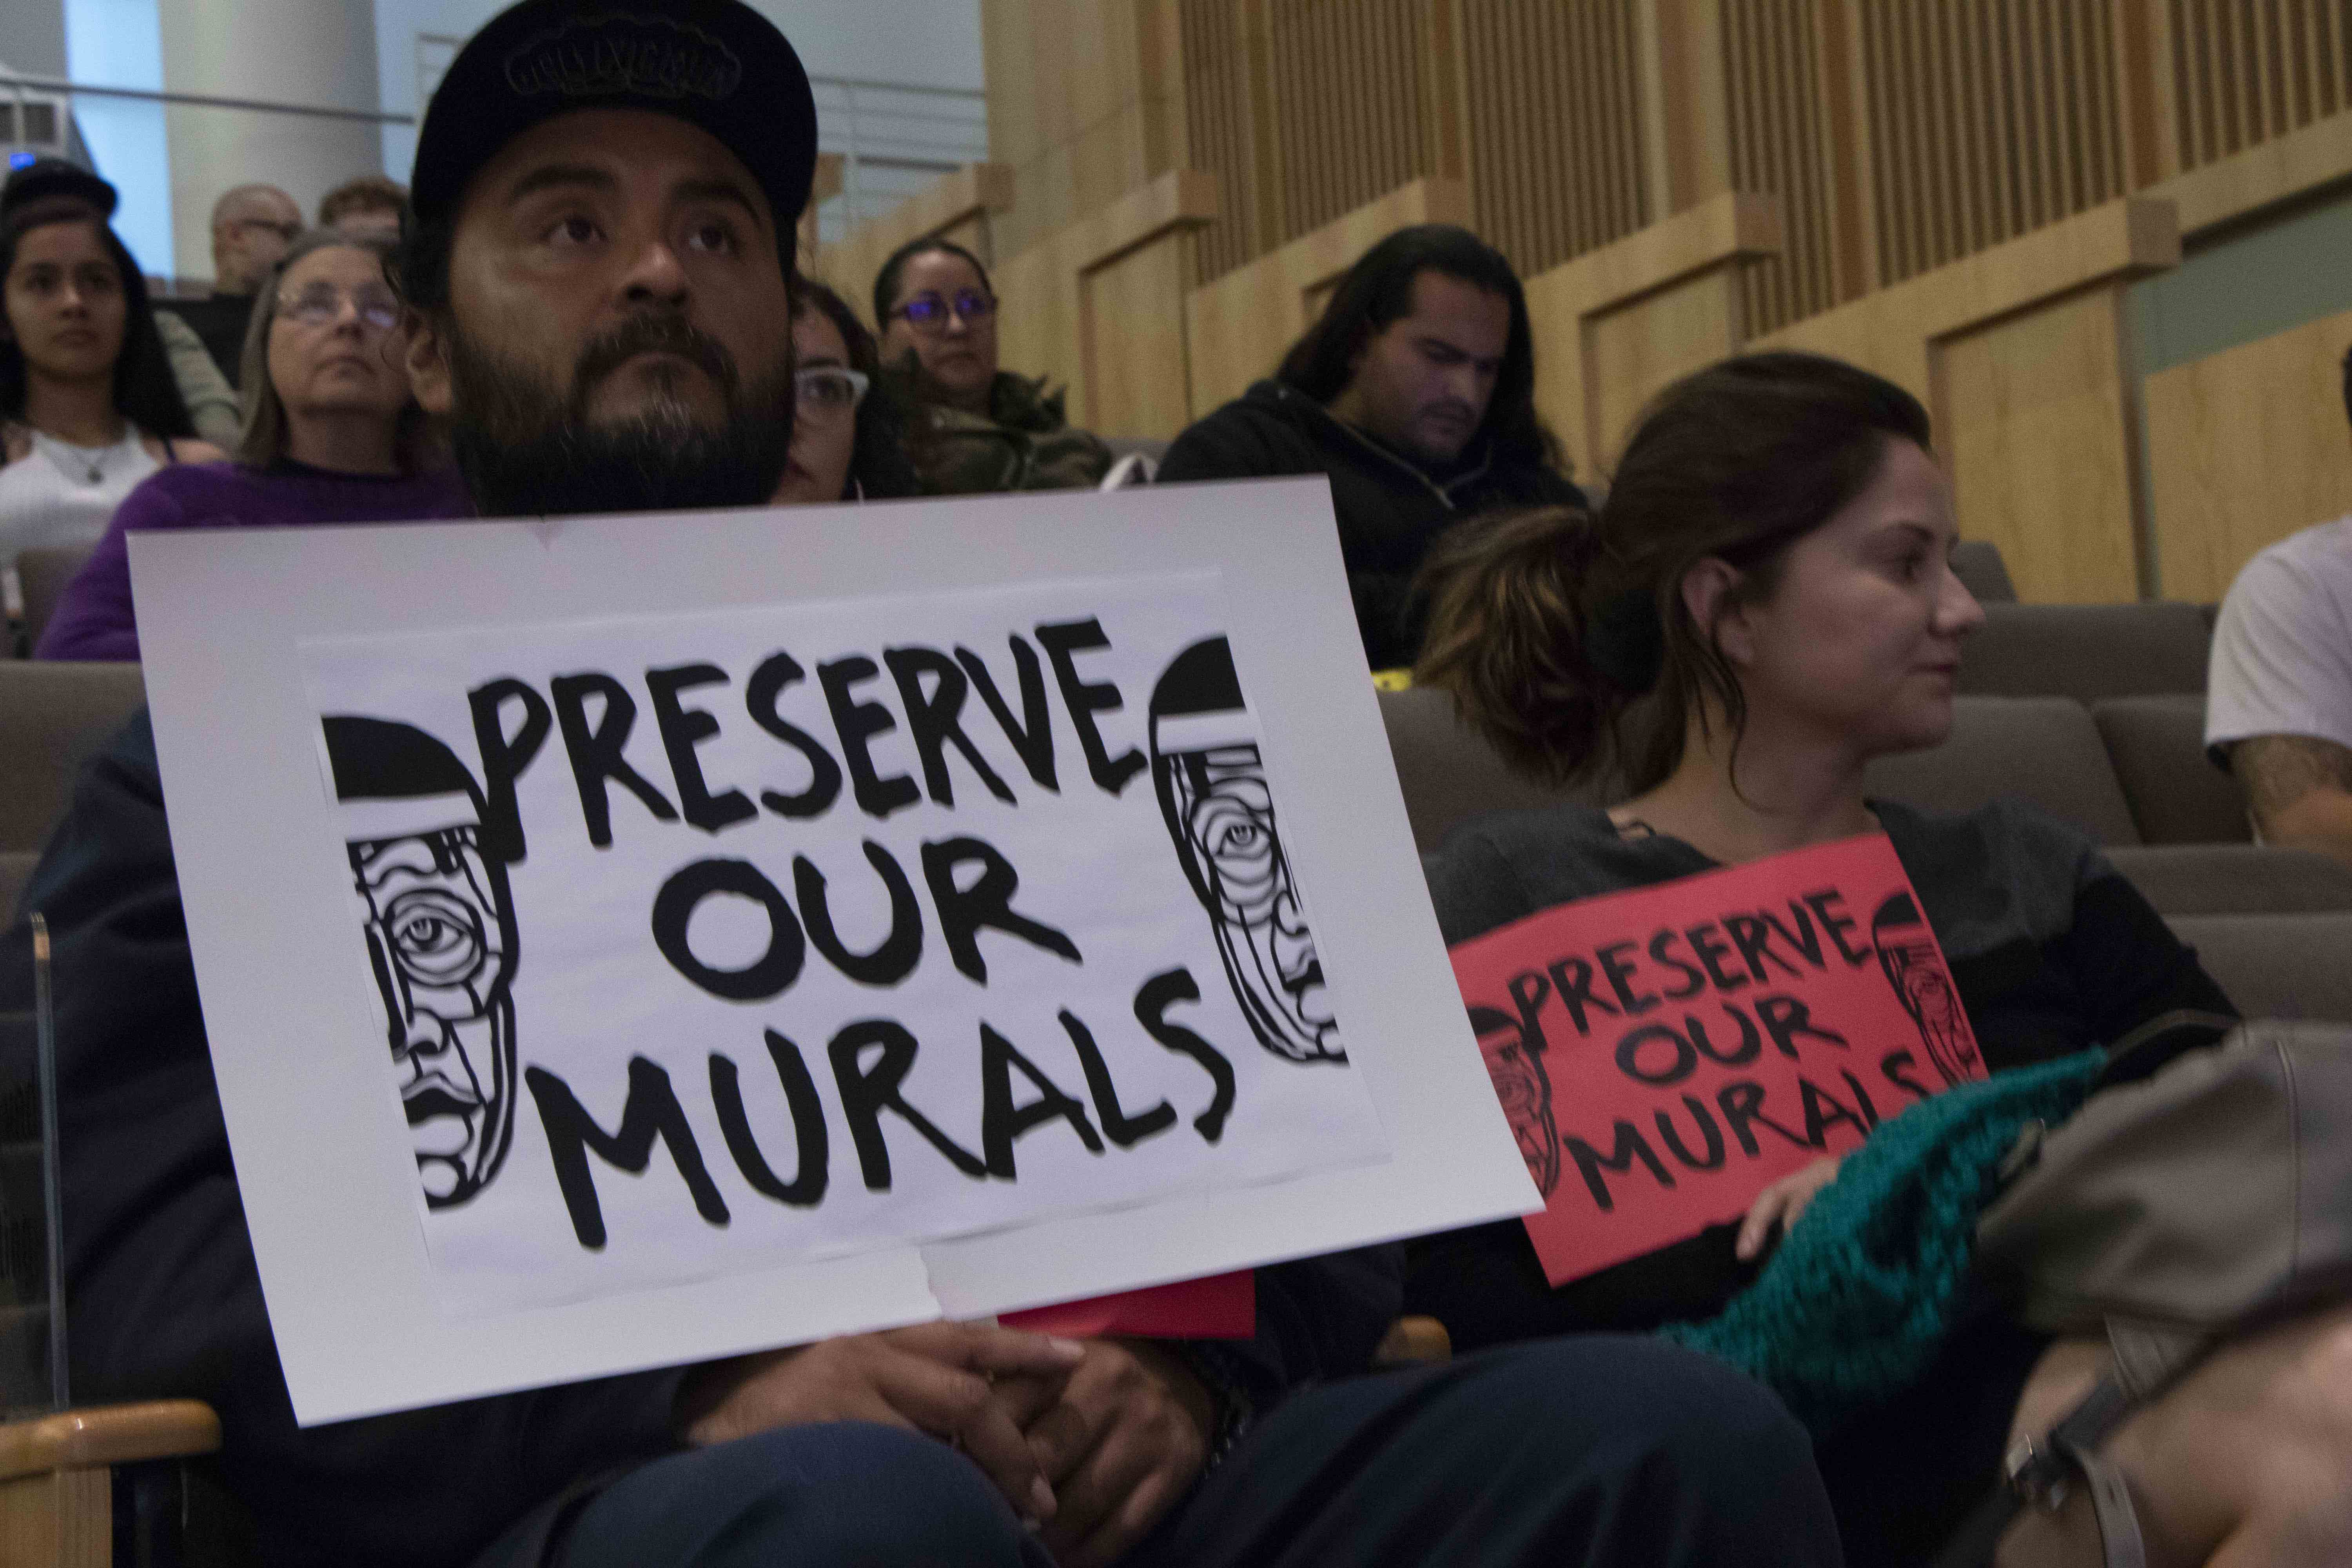 Residents Juan Carlos Araujo and Maricela Lechuga hold up signs urging the Historic Landmarks Commission to help protect Chicano murals at City Hall in San Jose, Calif., on Wednesday, Oct. 2, 2019. (Vanessa Ochavillo/Peninsula Press)